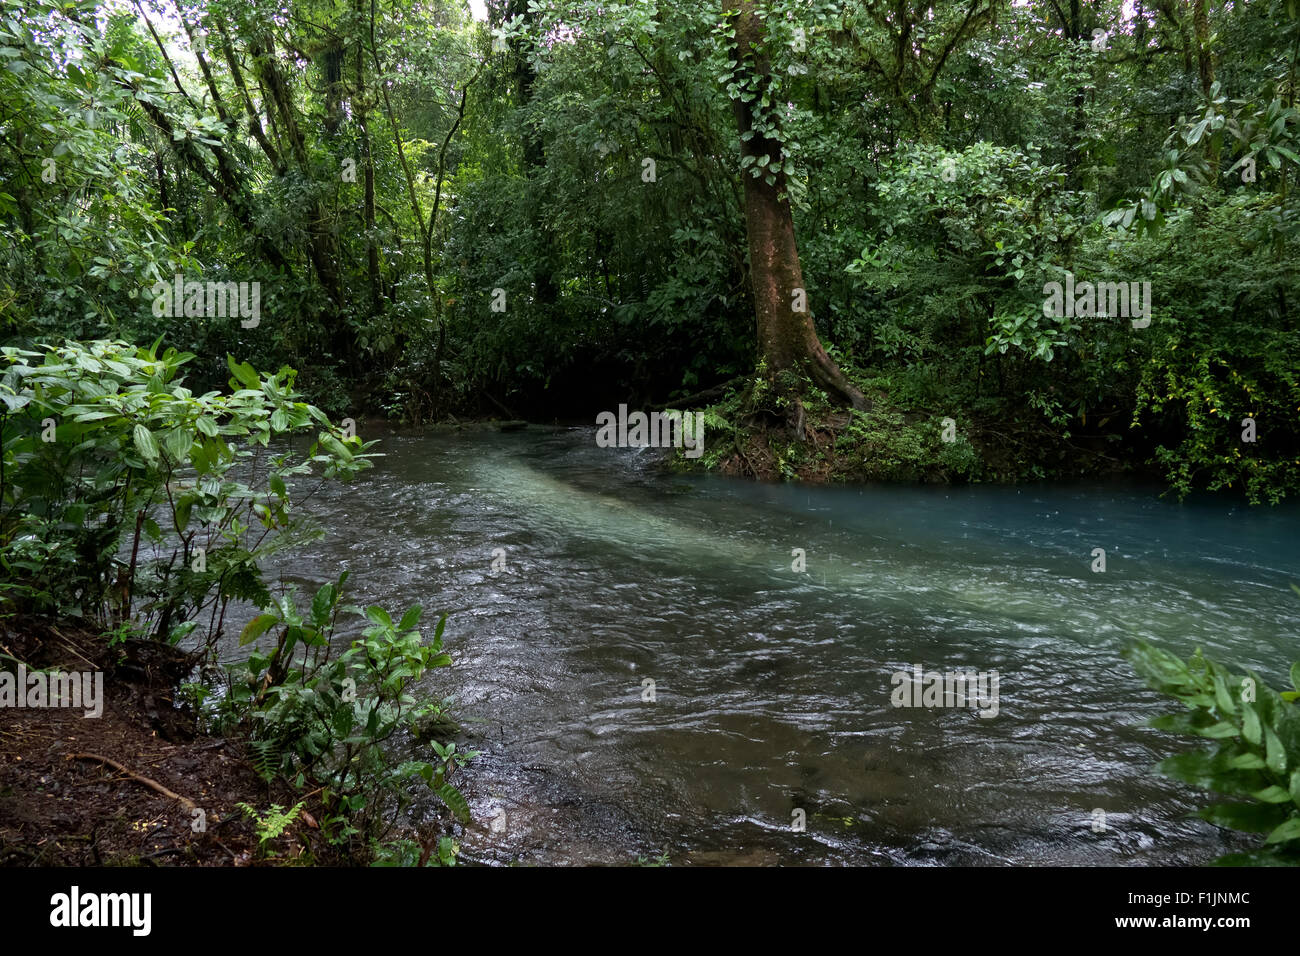 Tenorio Volcano National Park, Costa Rica, Central America. Jungle, forest, rainforest, nature conservation, river, - Stock Image